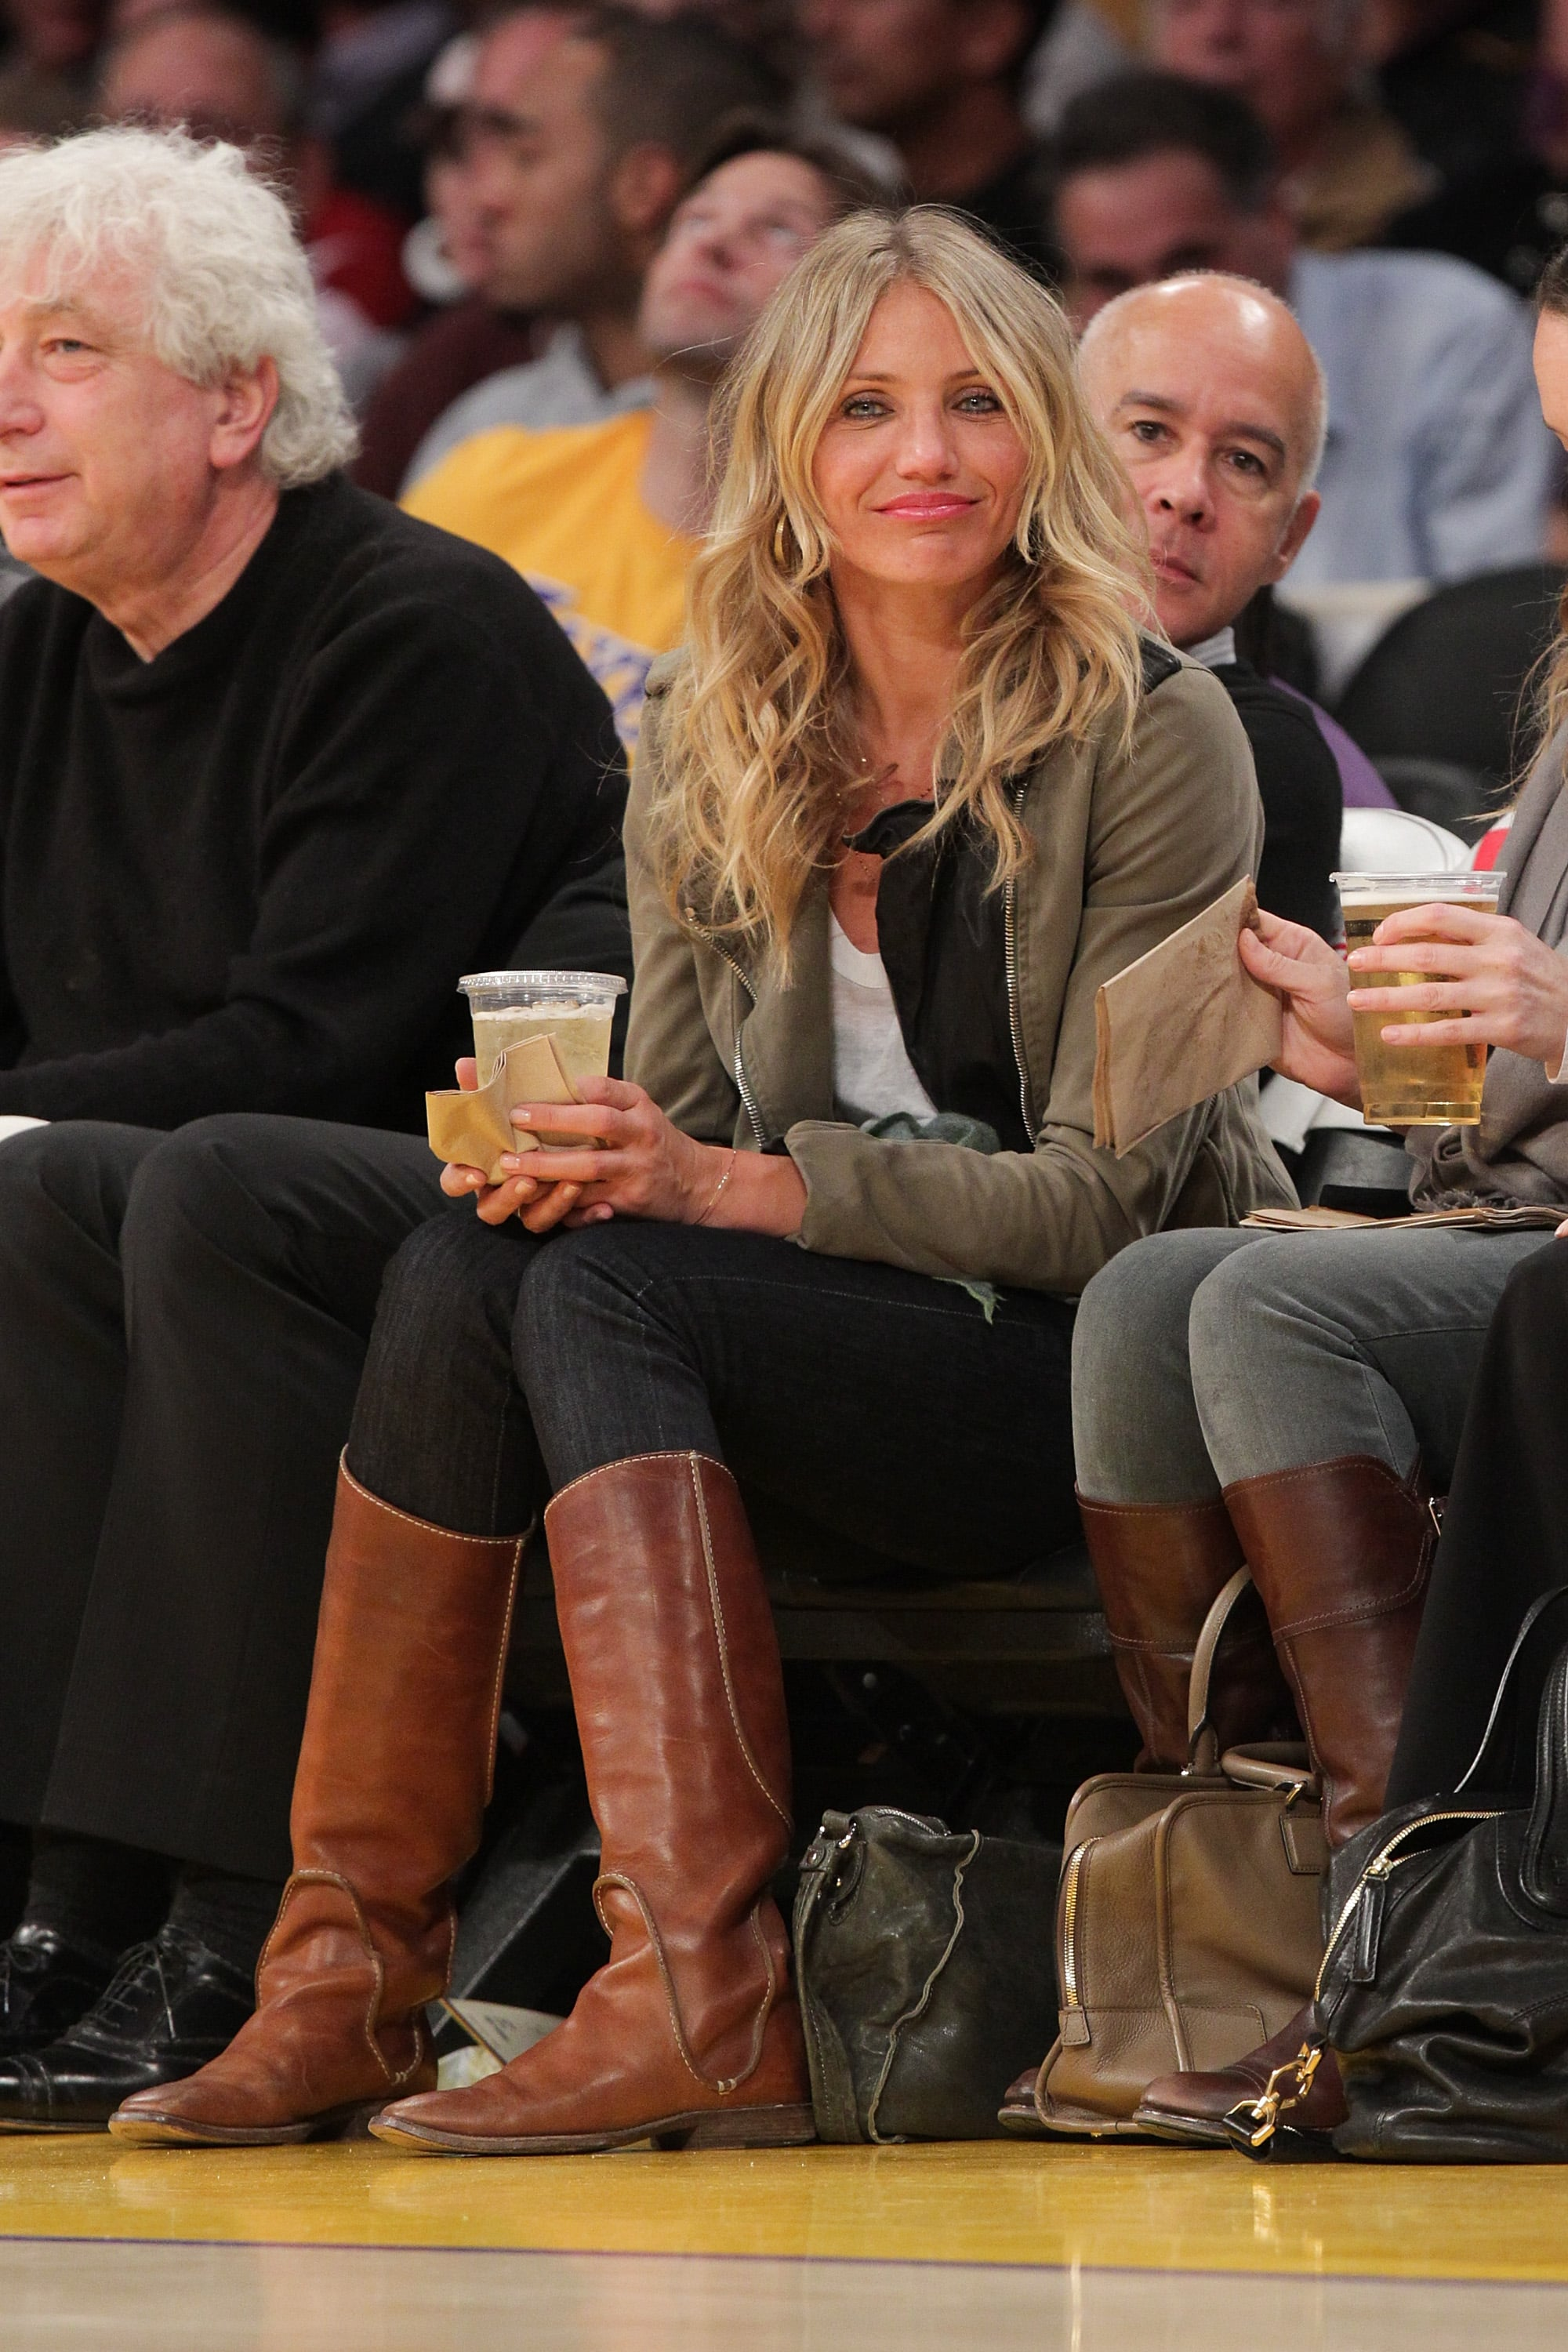 We love how relaxed Cameron Diaz looked at this January 2011 Lakers game— she wore a pair of black skinnies, an olive jacket, and brown flat boots for maximum comfort. Plus, she's got the best basketball game accessory of all: an ice-cold beer.